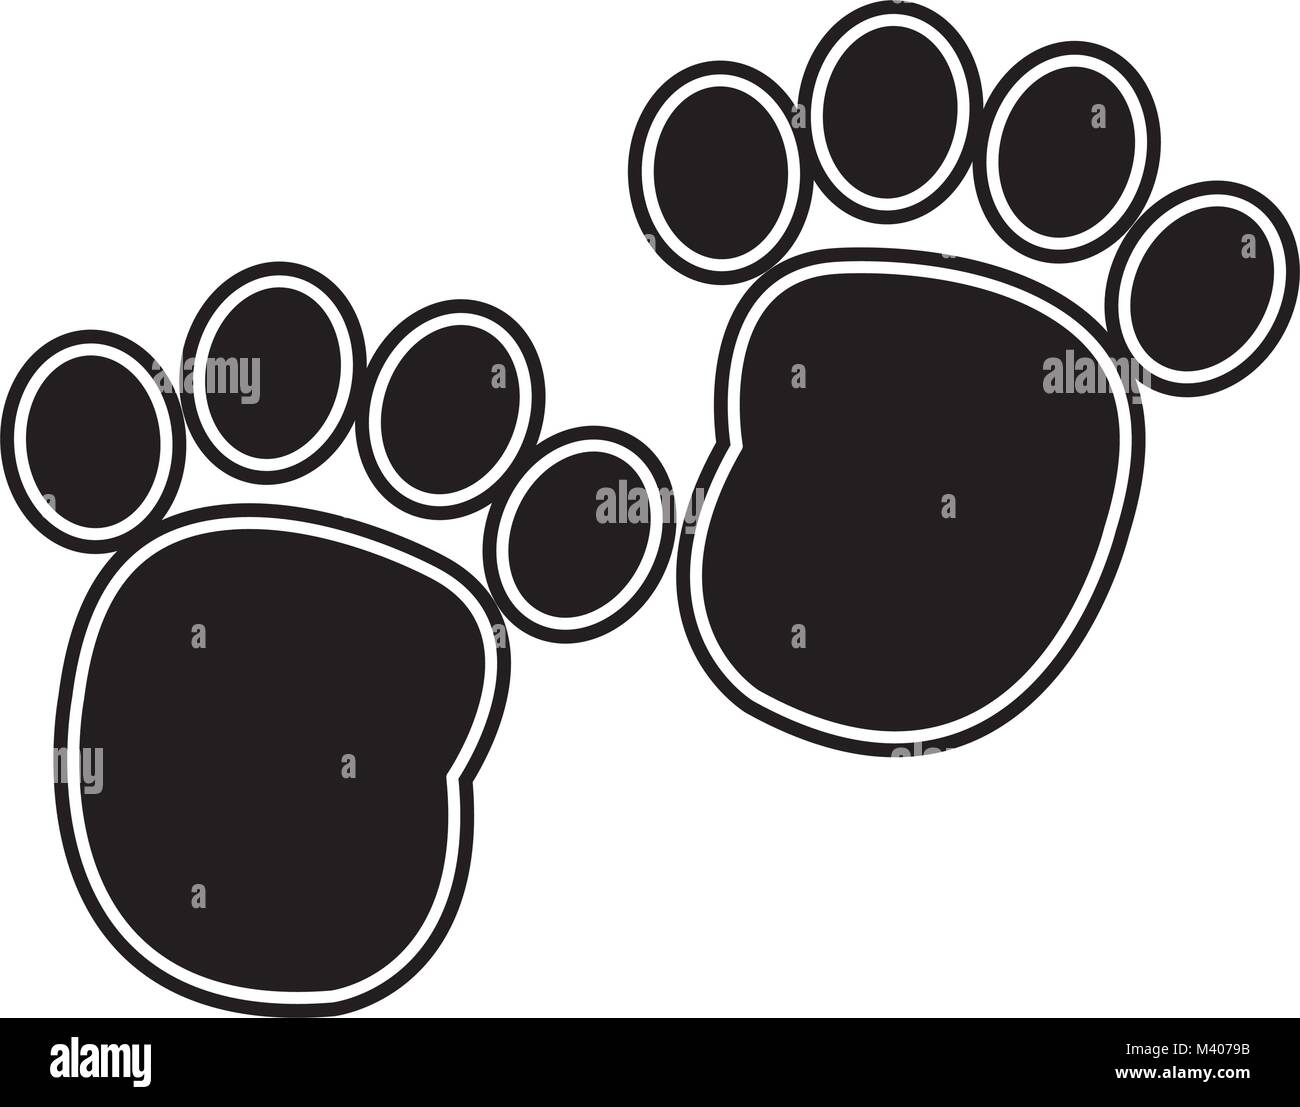 silhouette human footprint with toes mark sign - Stock Vector